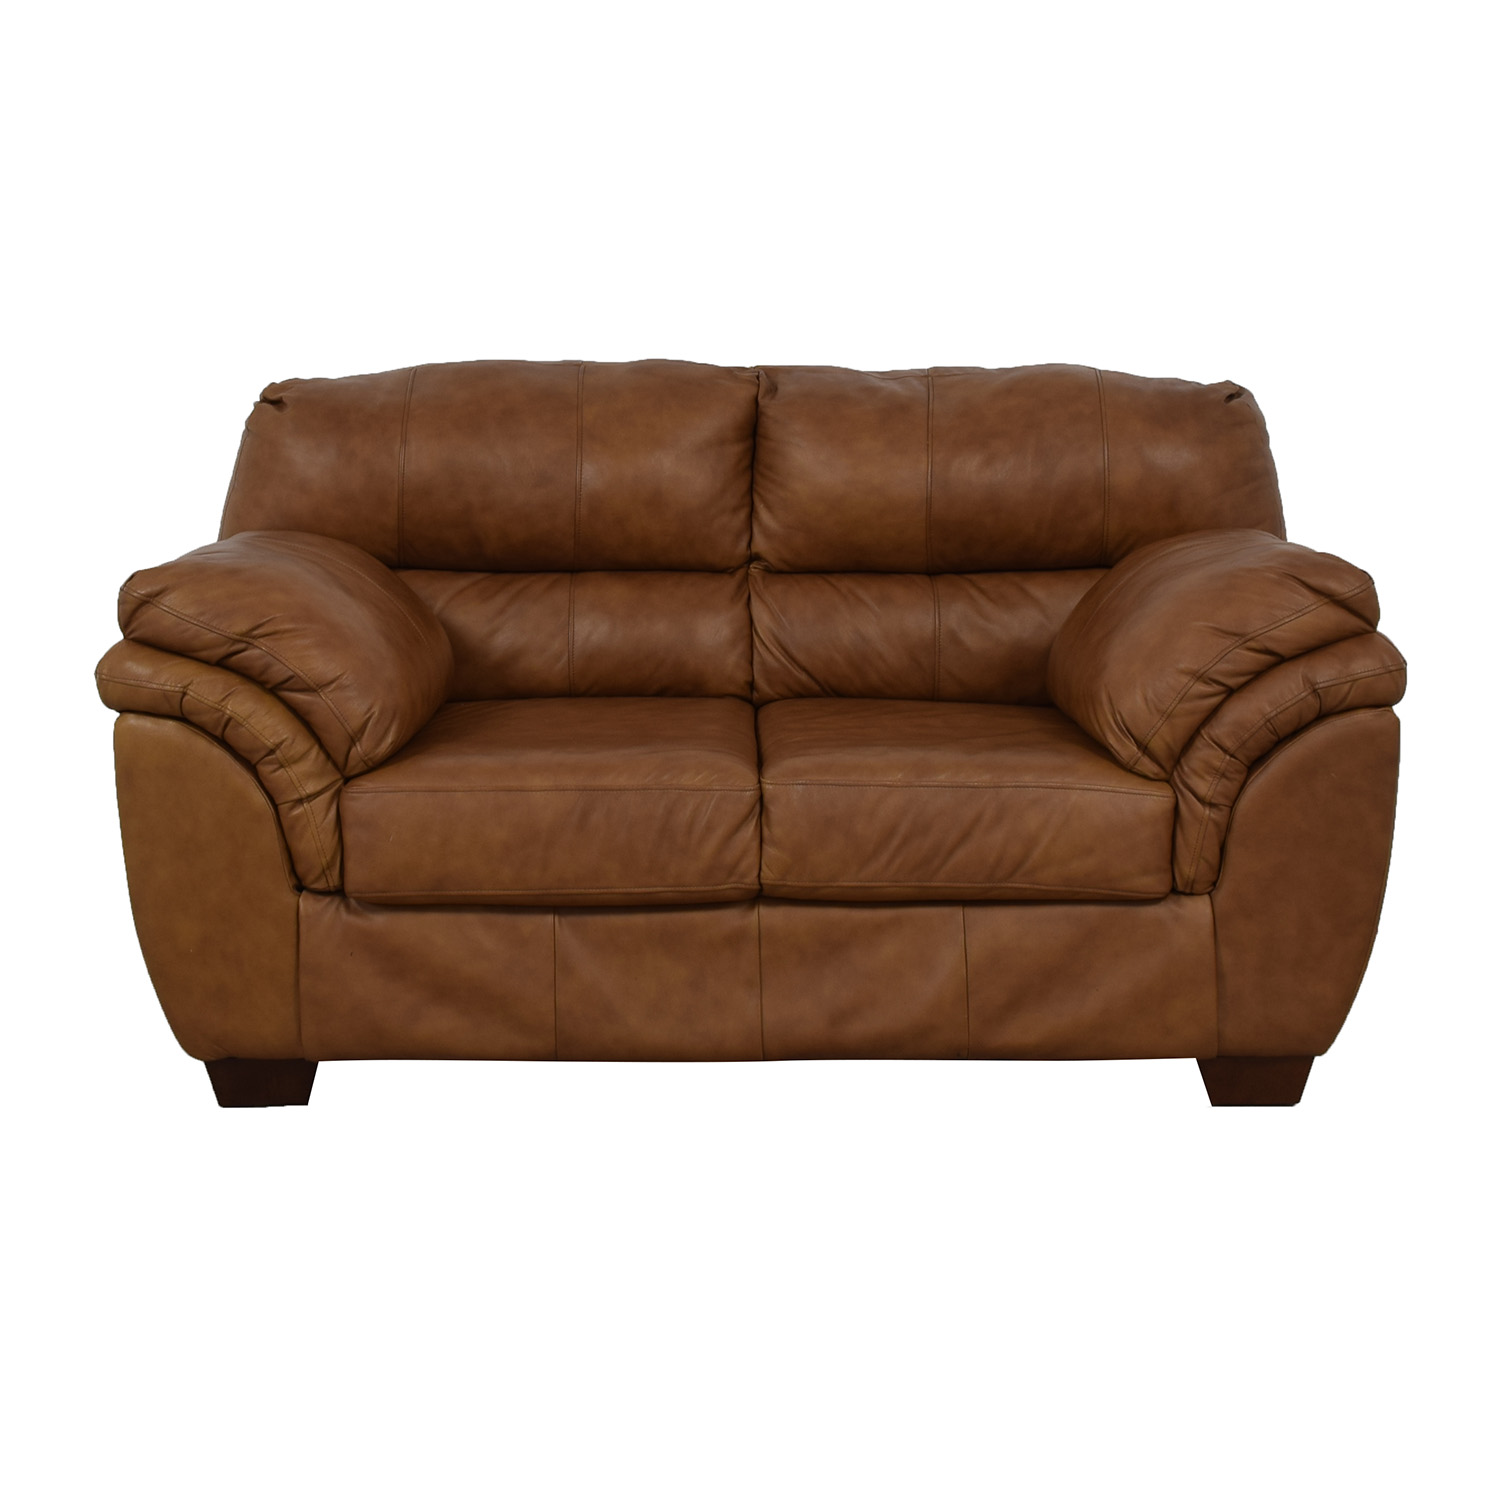 Jennifer Convertibles Jennifer Convertibles Brown Loveseat light brown